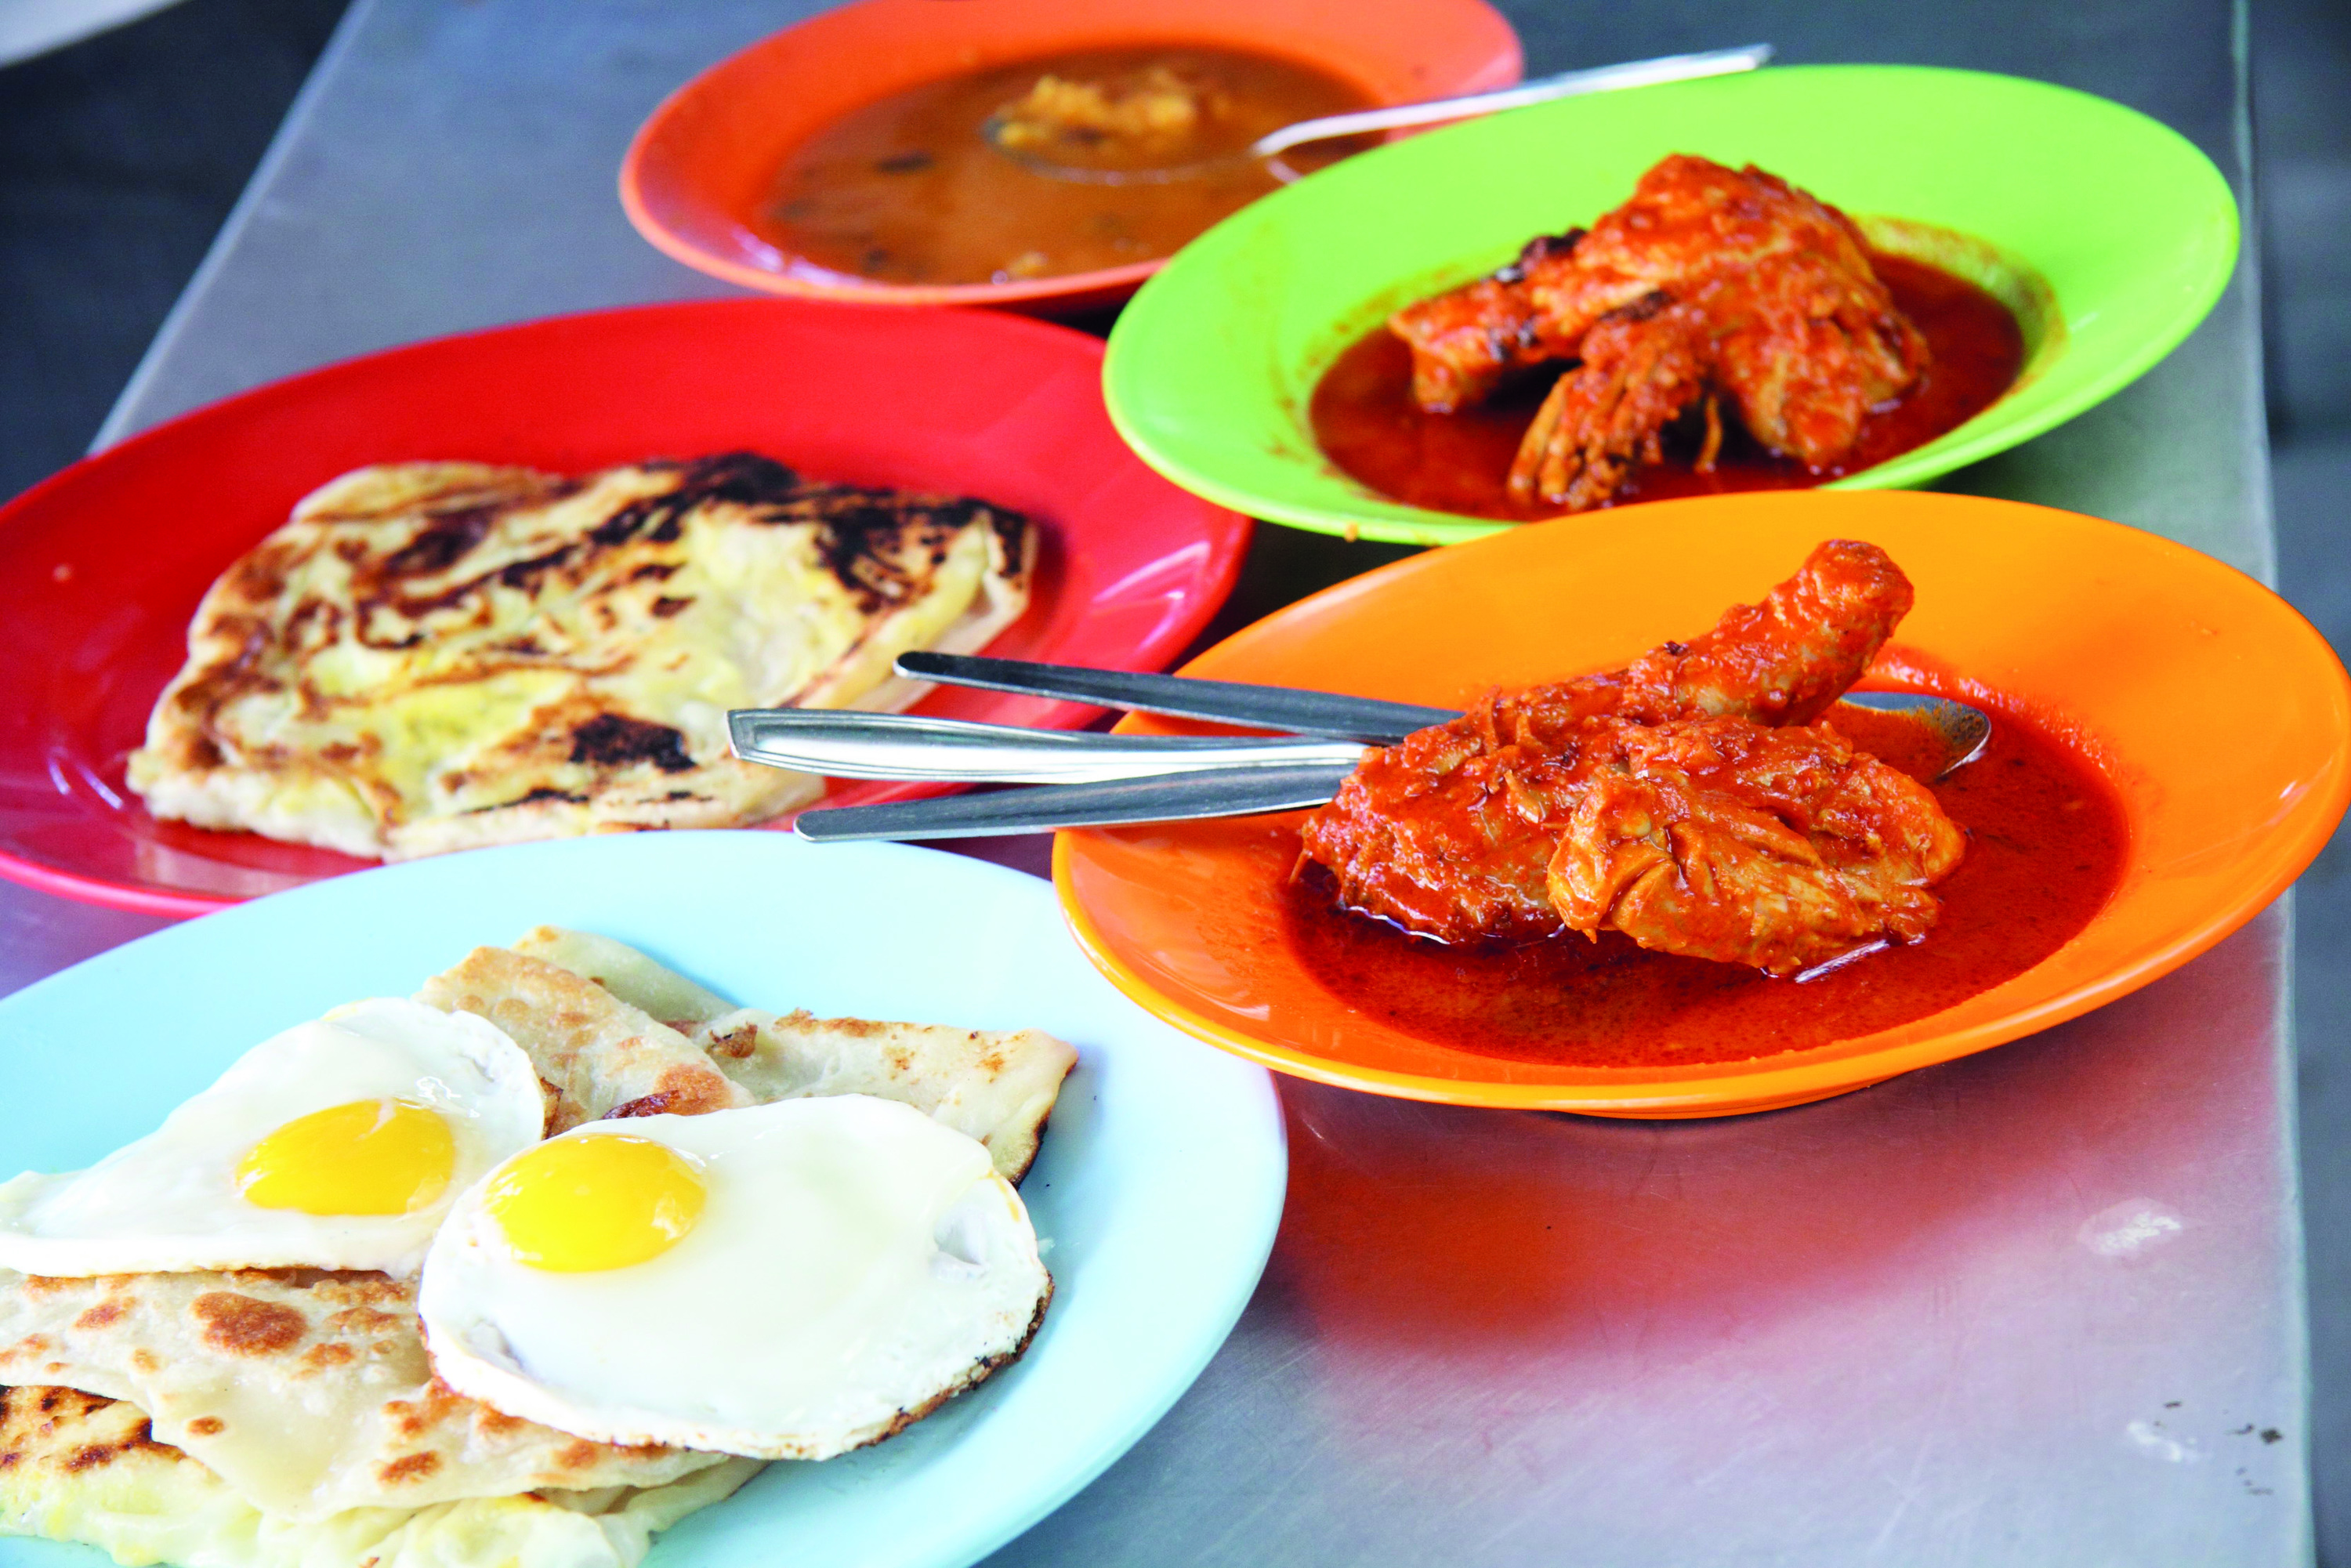 6am-7am: Special Famous Roti Canai